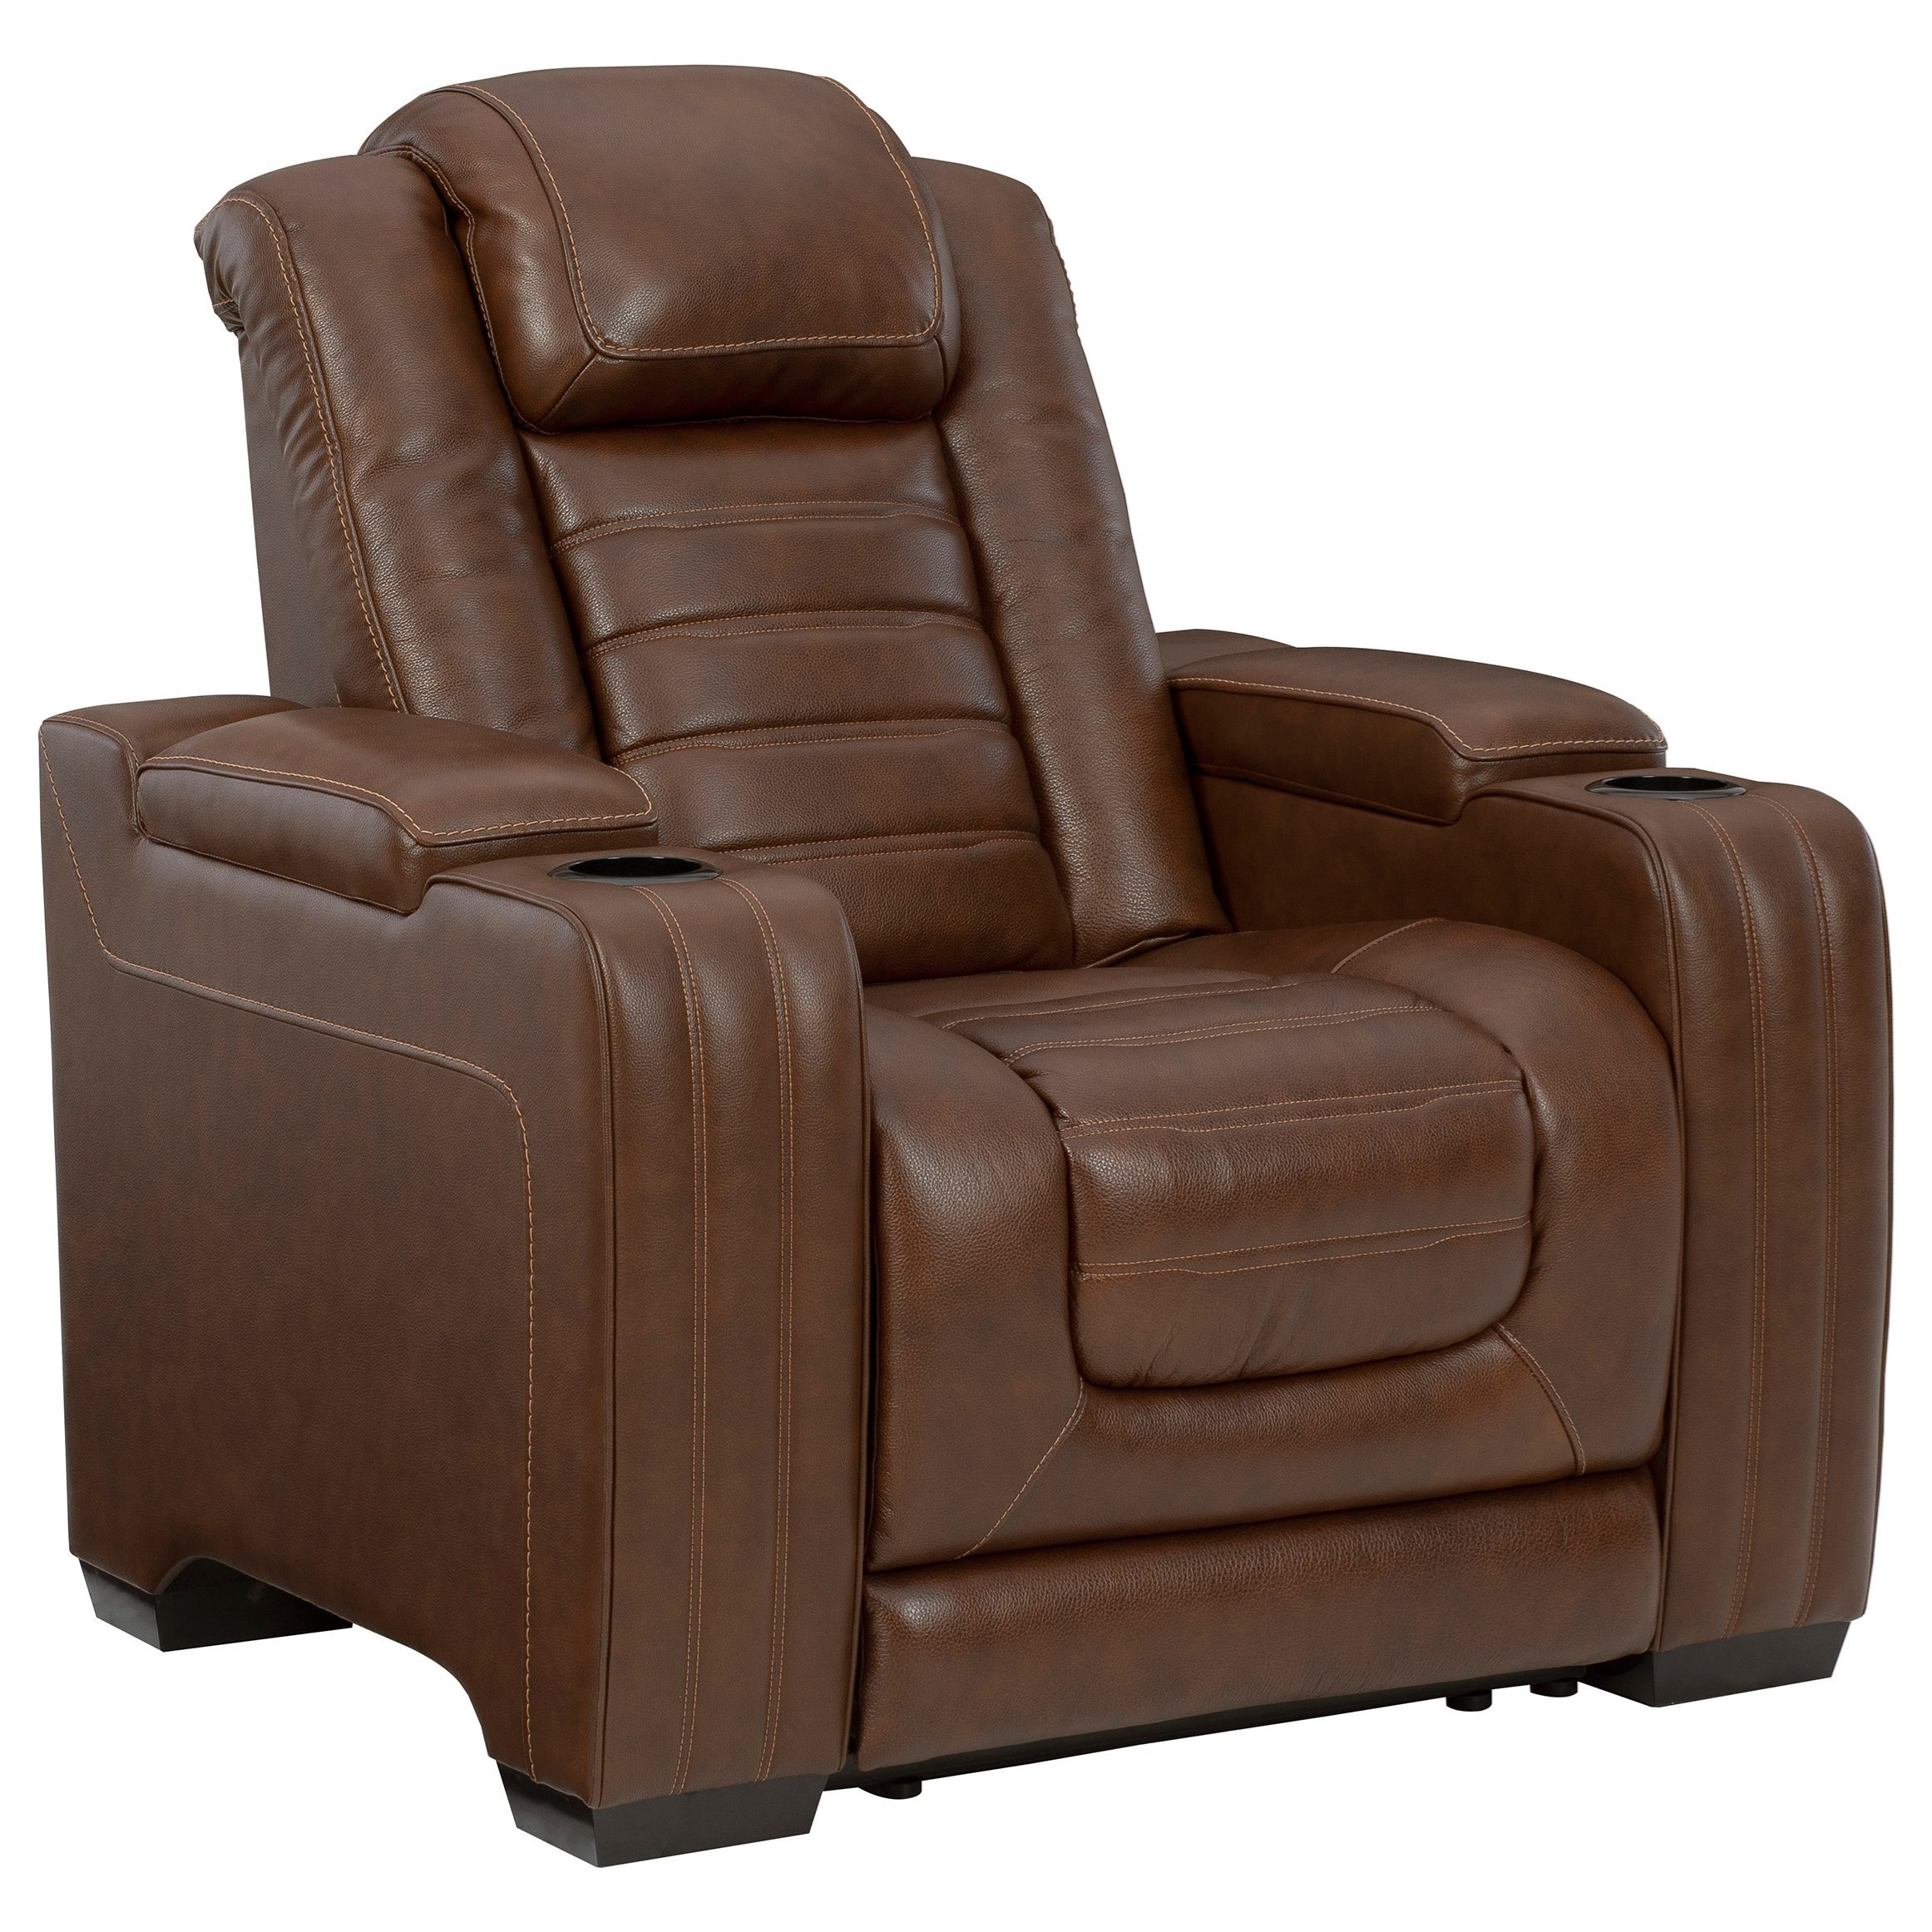 Backtrack Power Recliner w/ Adjustable Headrest by Signature Design by Ashley at Sparks HomeStore